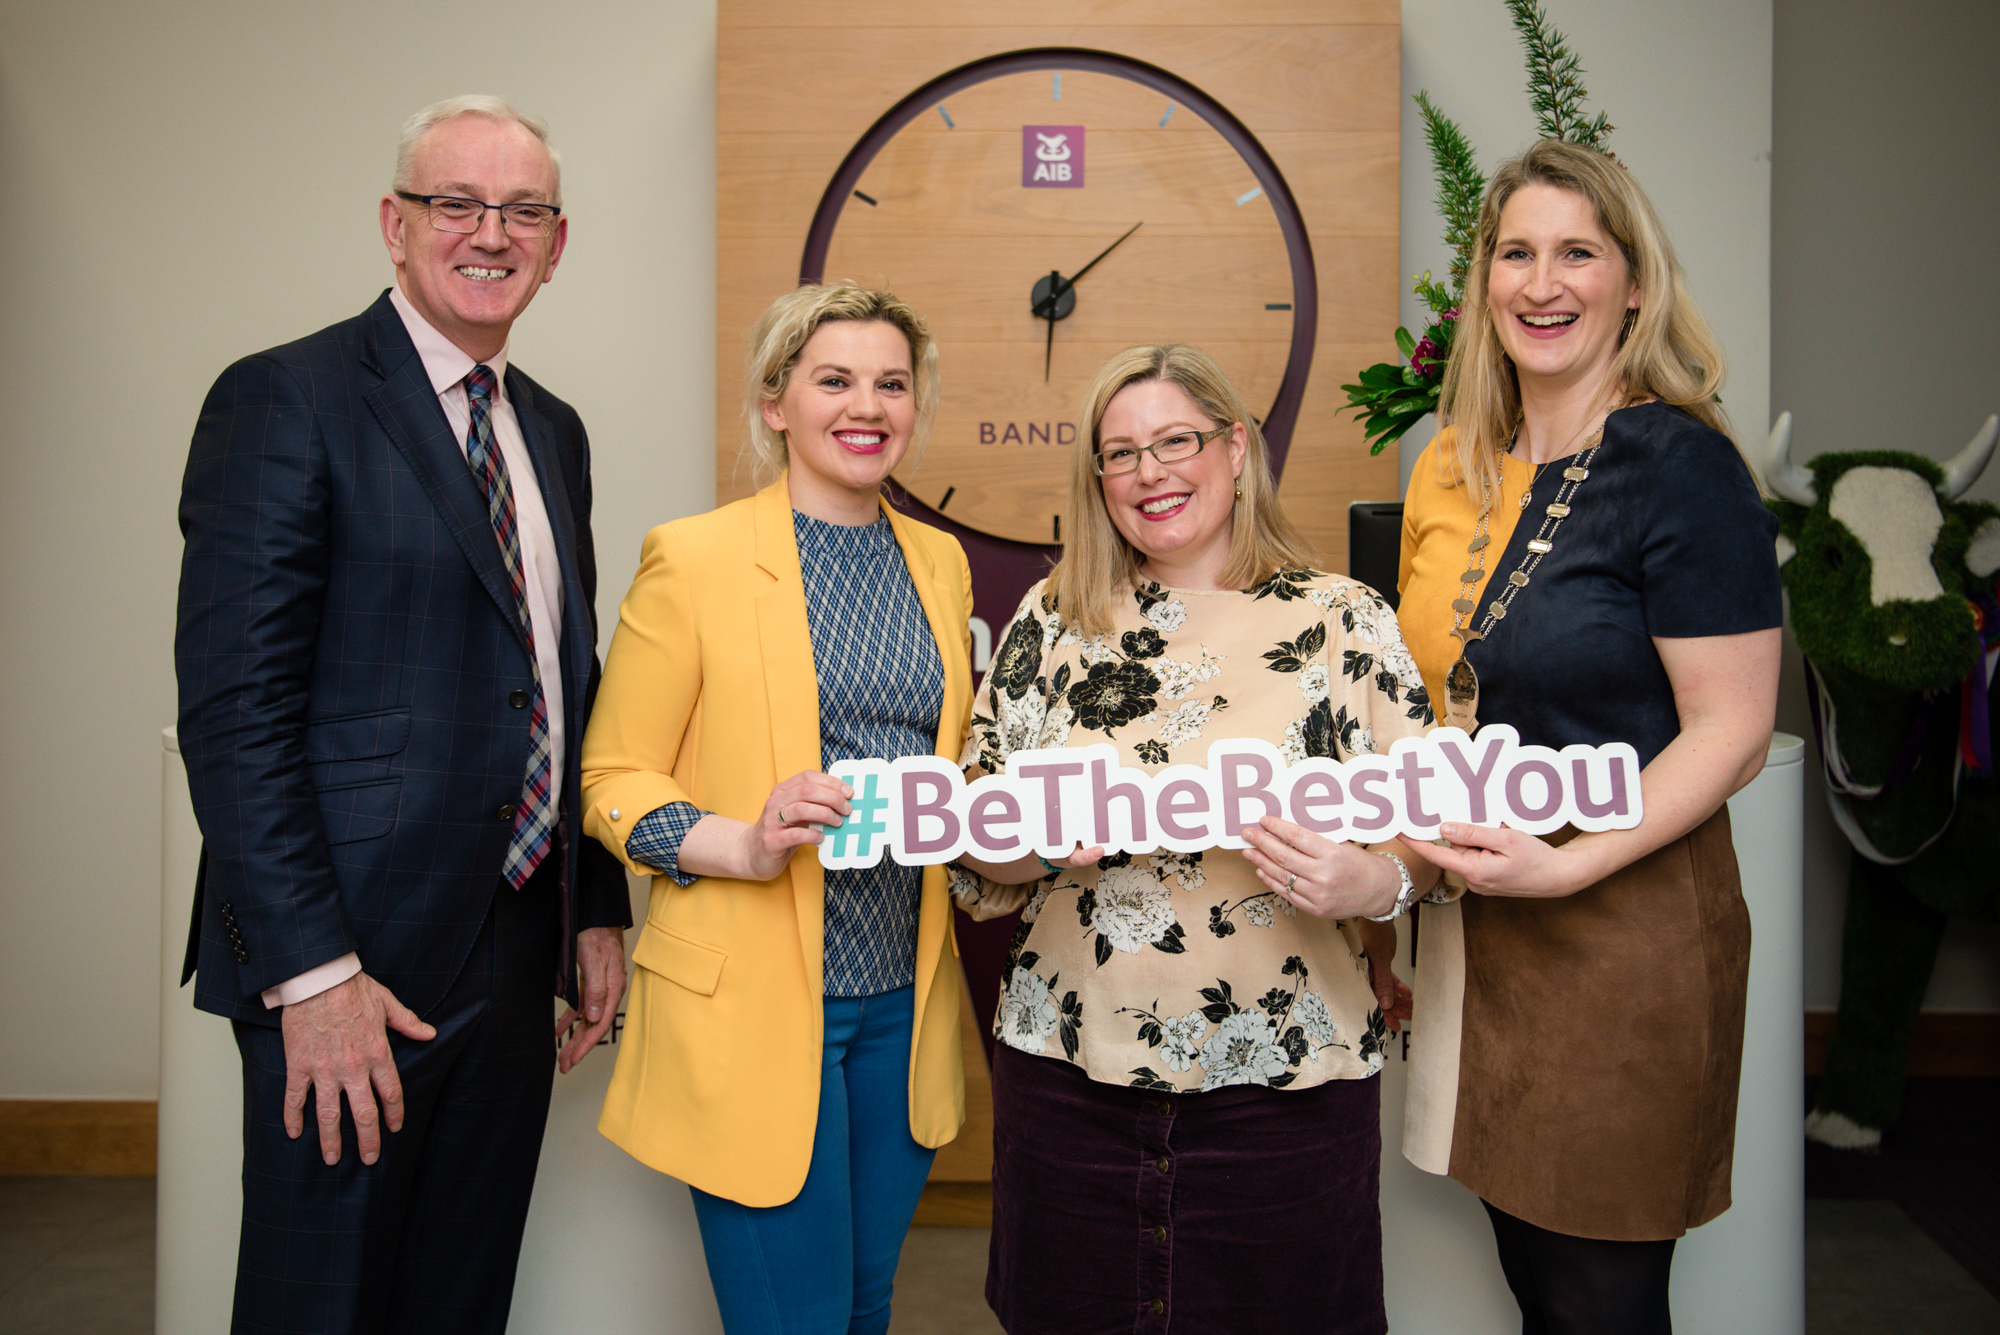 Network Ireland West Cork launches Businesswoman of the Year Awards